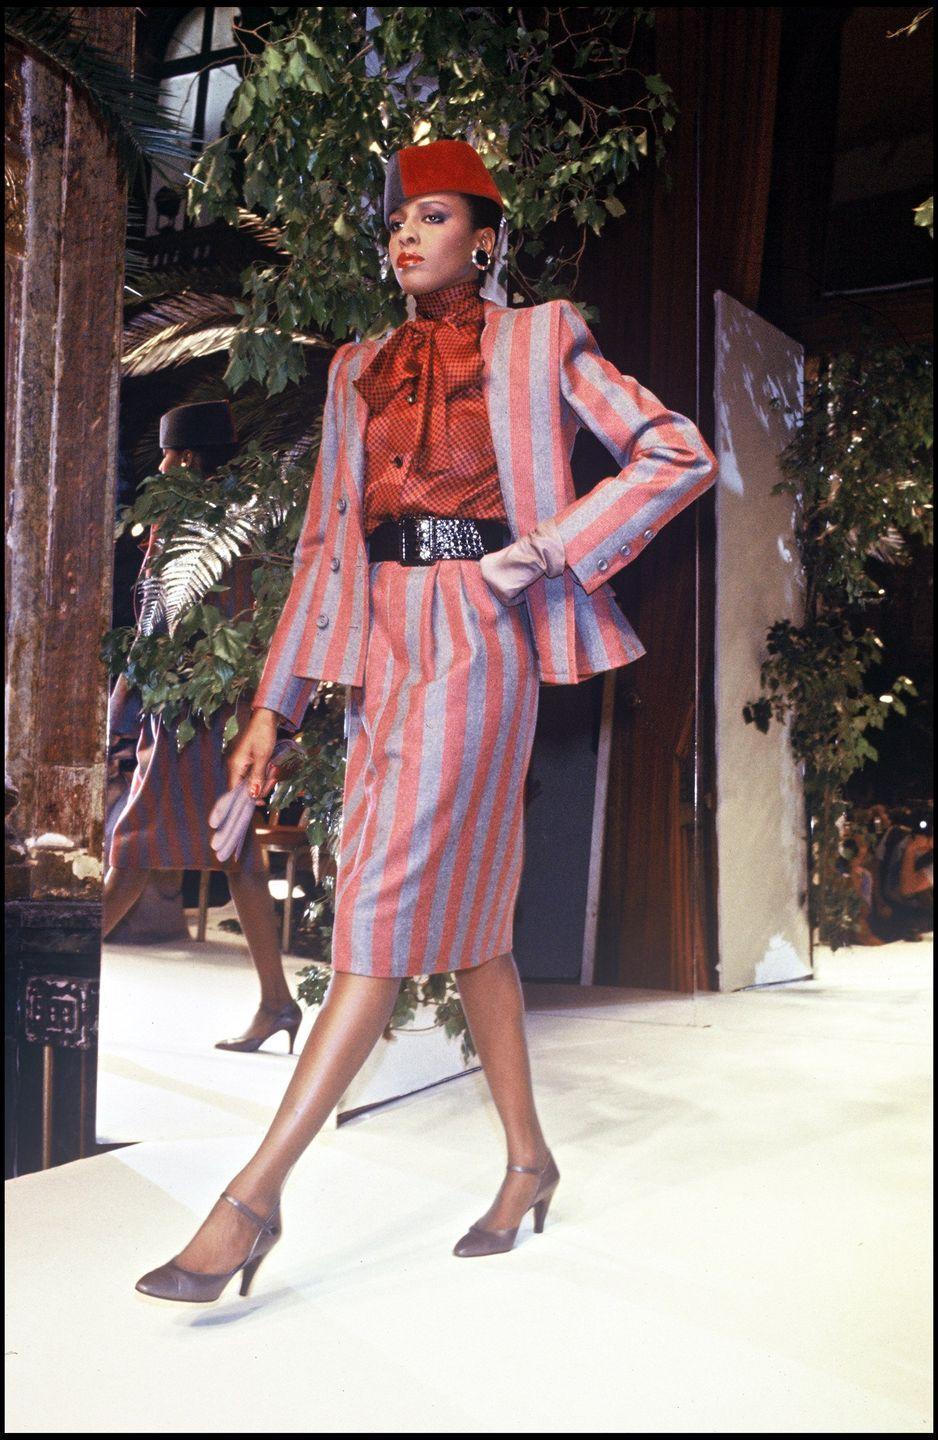 <p>Givenchy's 1984-1985 fall/winter collection paid homage to some of the high-waisted suits seen in fall fashion decades before.</p>